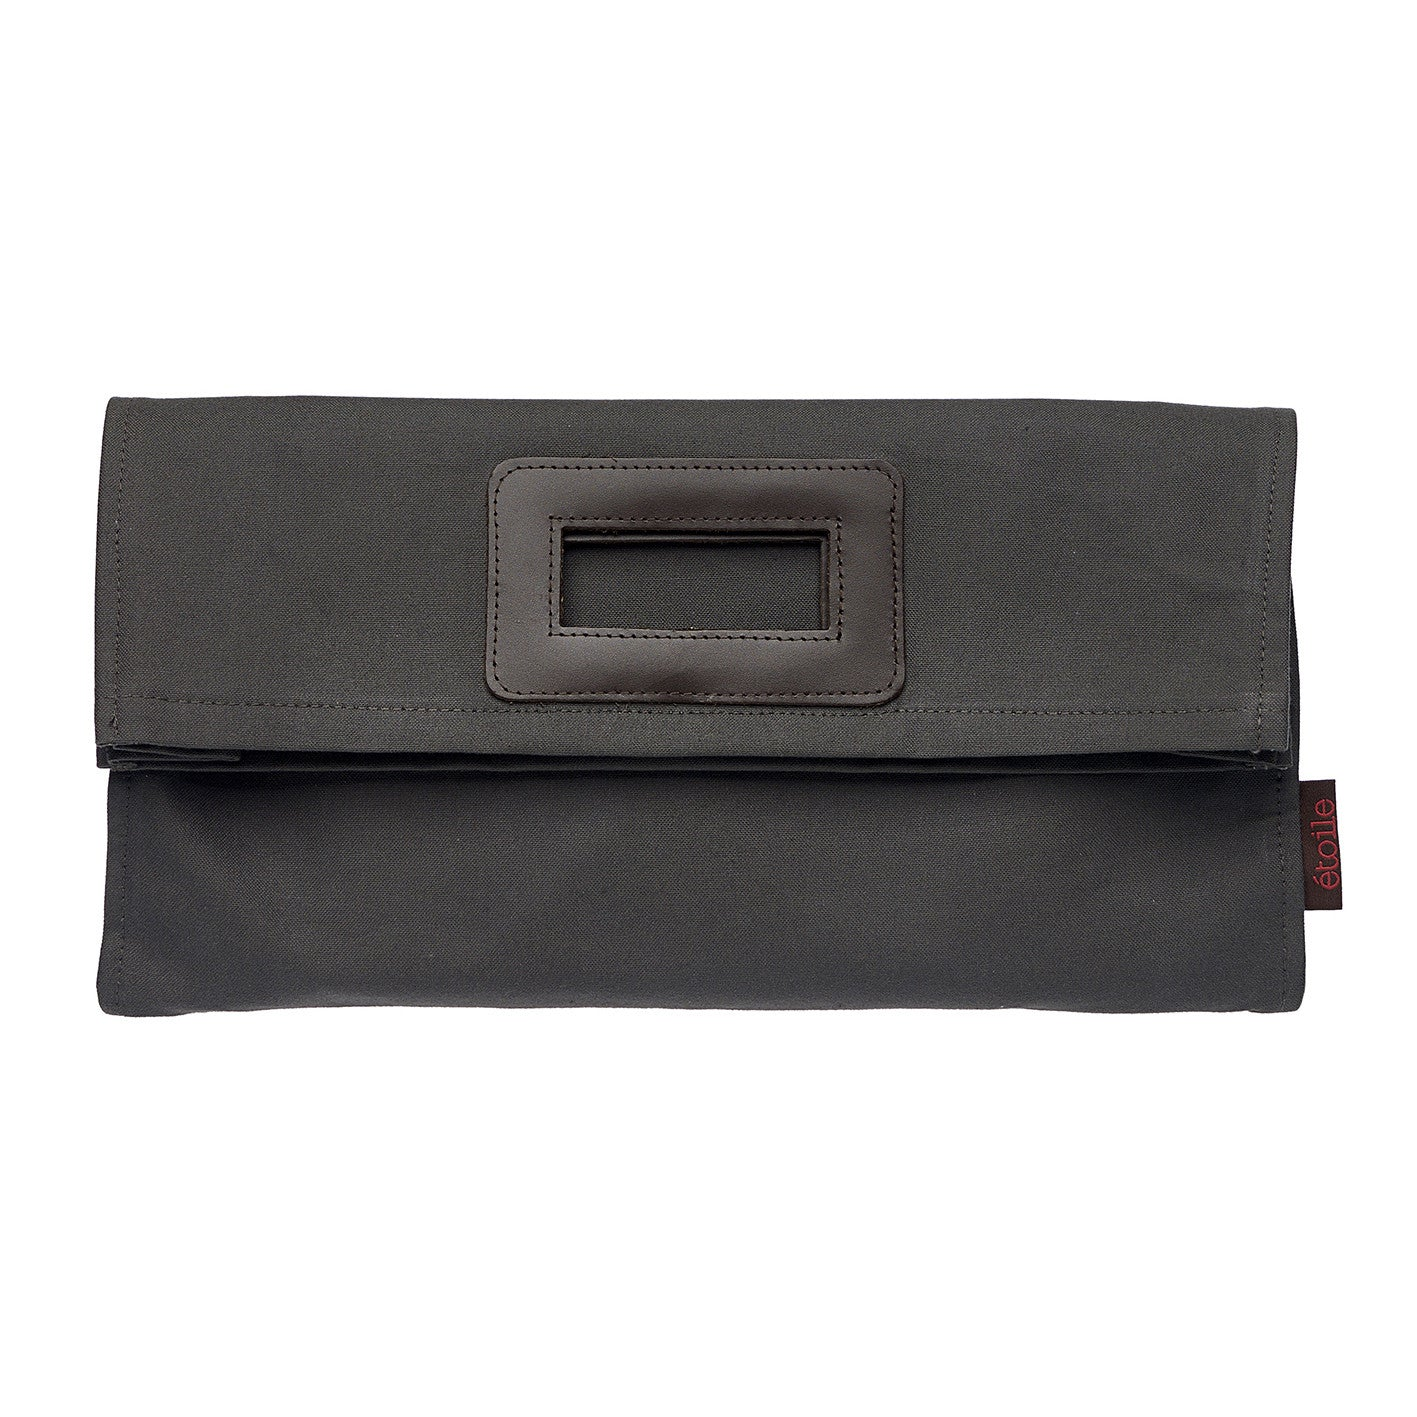 Stephanie Coated Cotton Canvas Clutch Bag in Dark Stone Gray